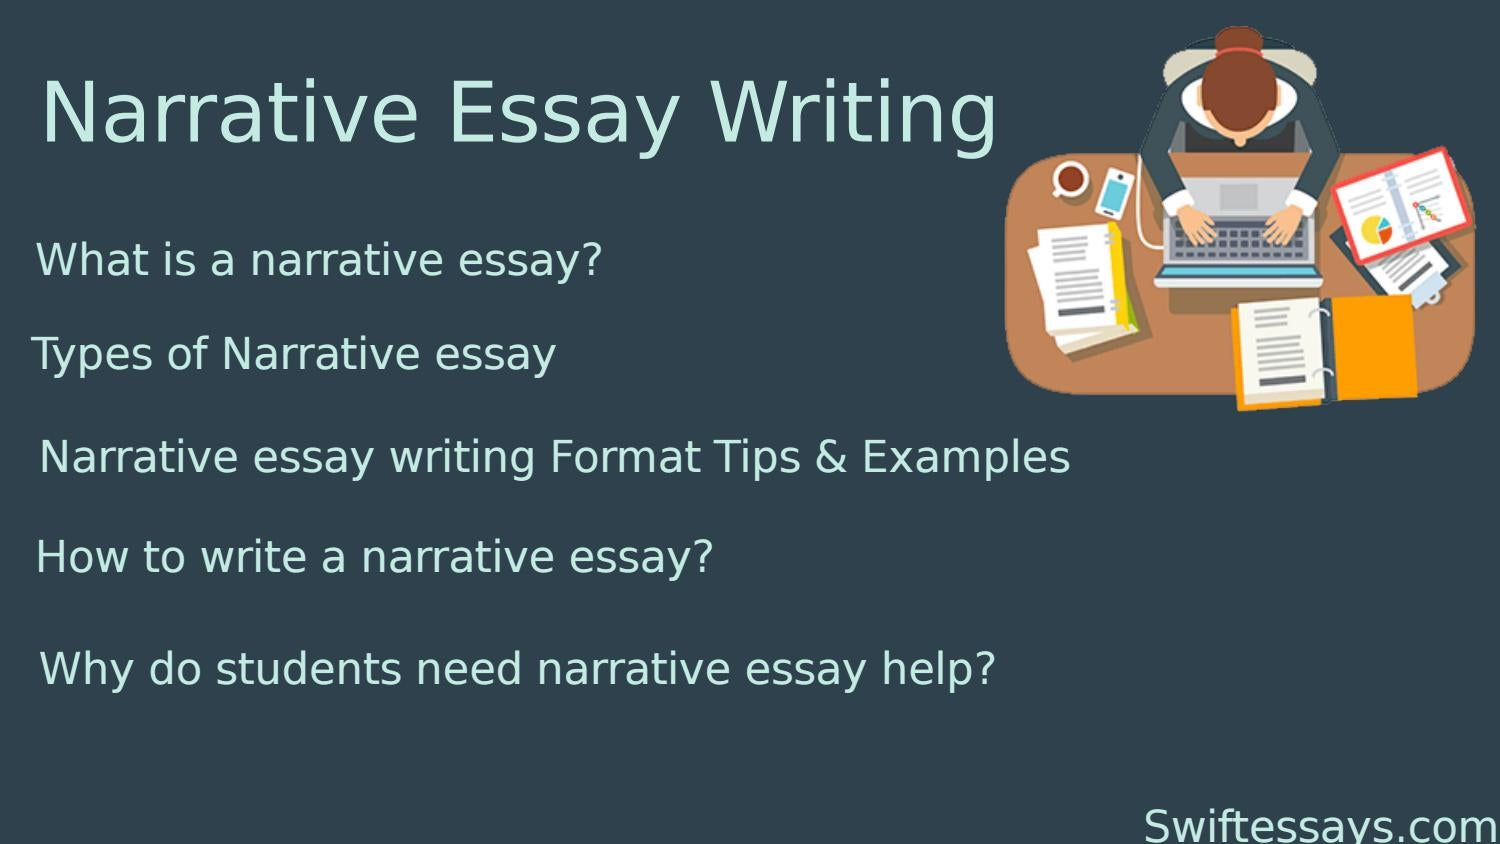 Narrative essay + writing help professional school essay writers for hire for masters